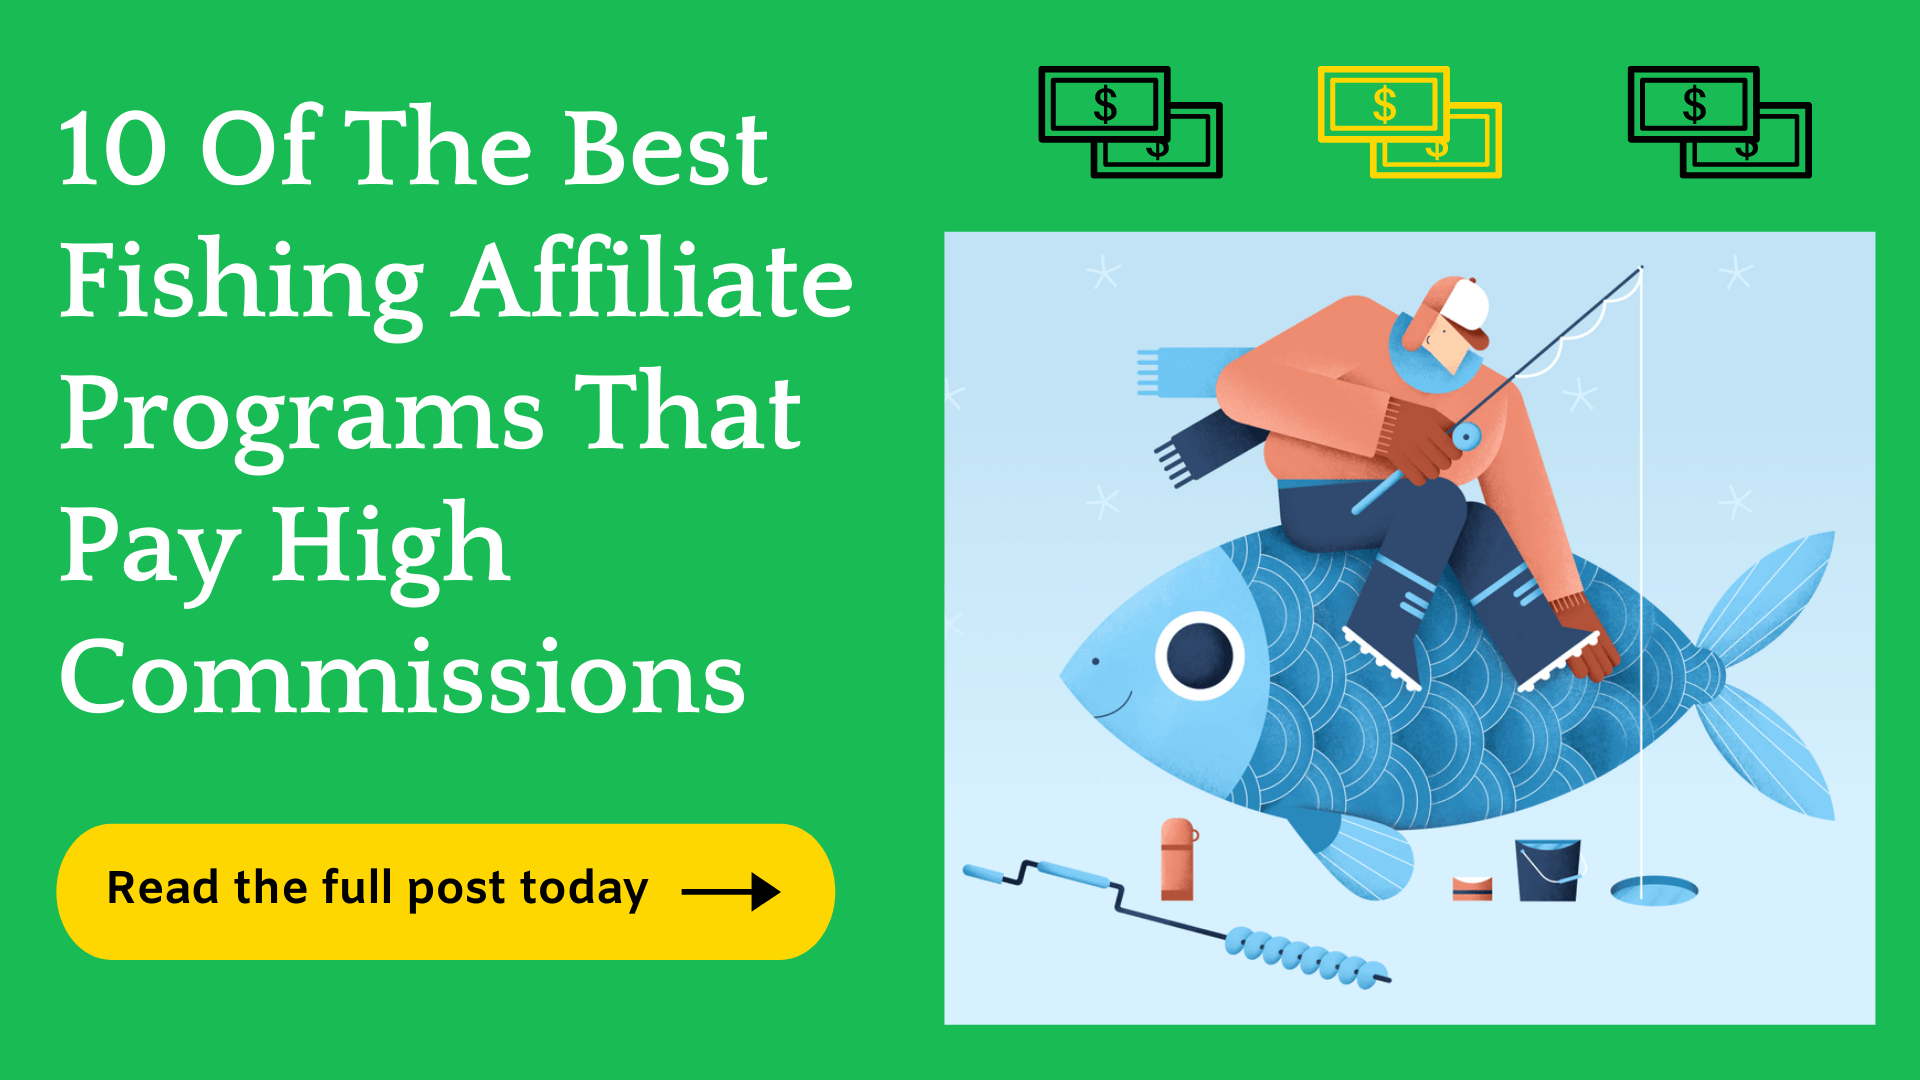 10 Best Fishing Affiliate Programs (Crazy Commissions)